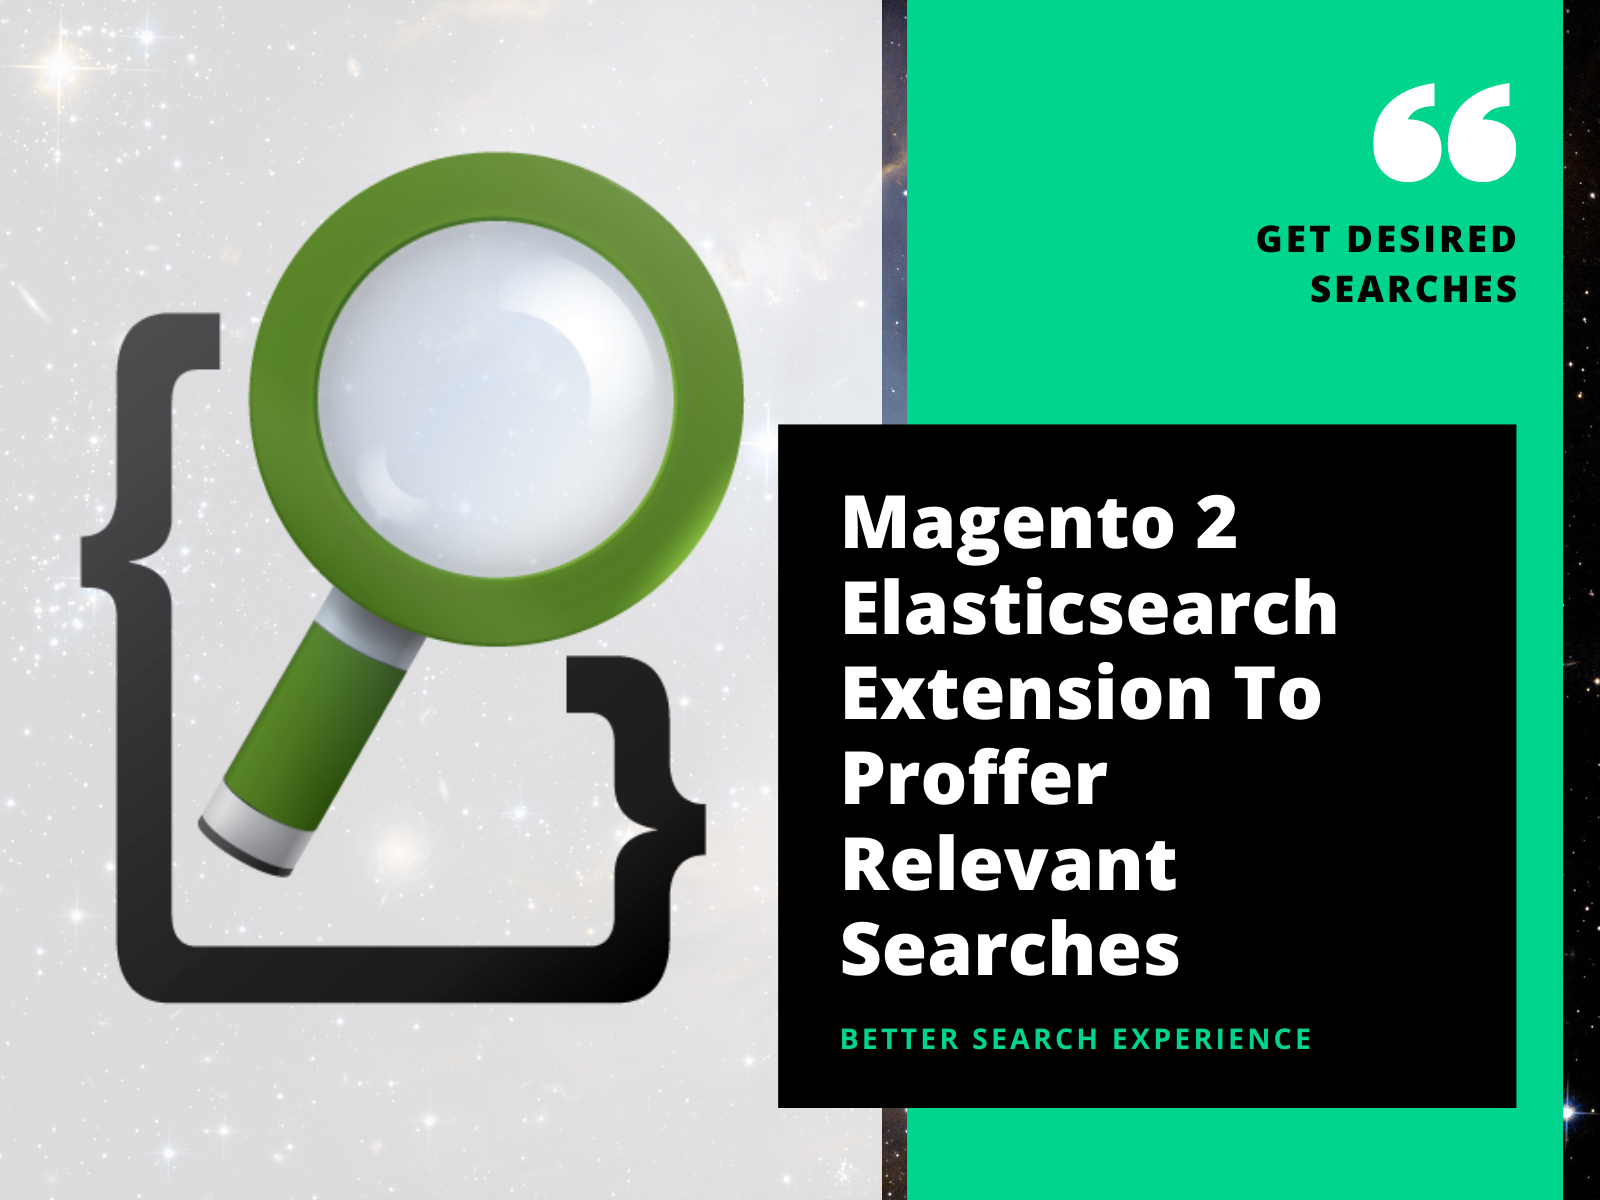 Magento 2 Elasticsearch Extension To Proffer Relevant Searches